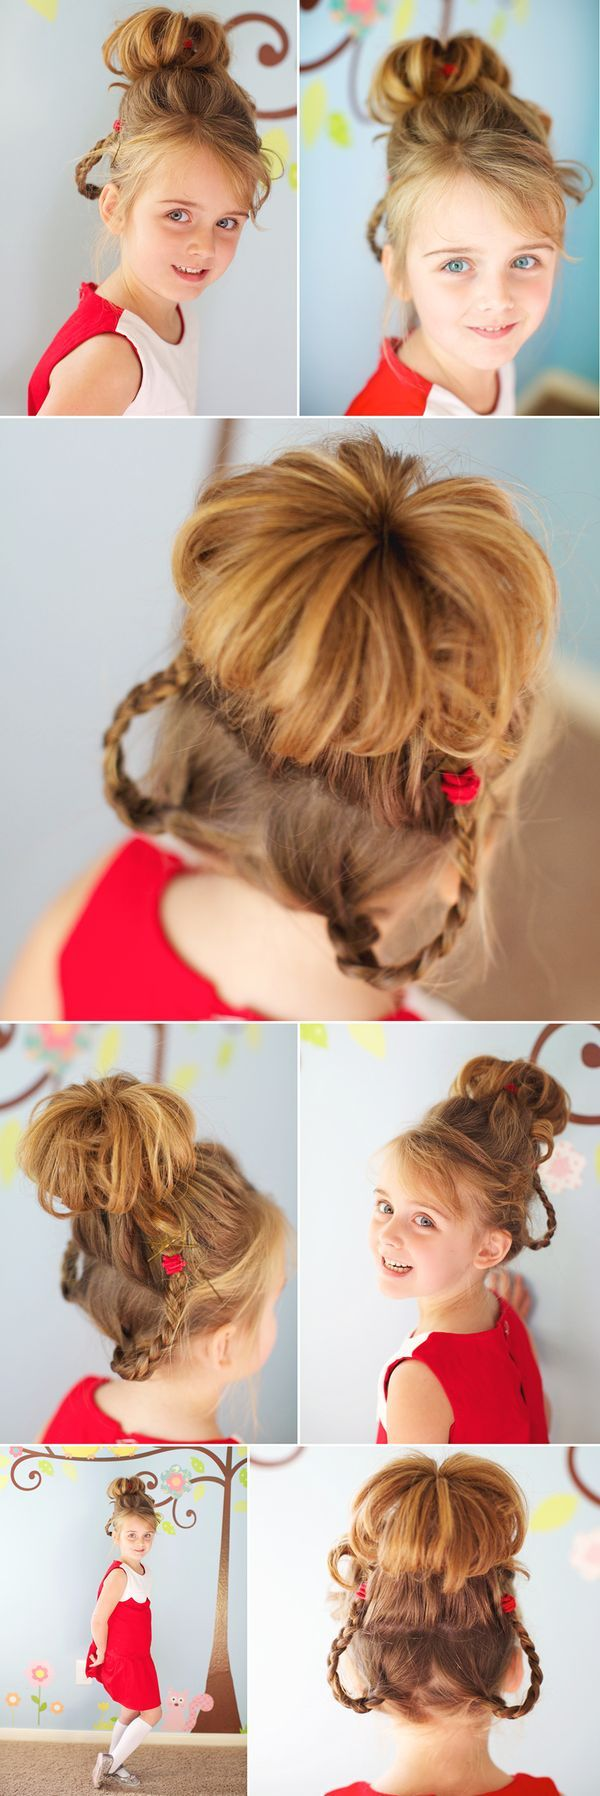 61 best Dr Seuss Who Ville Hair Ideas images on Pinterest | Costumes, Crazy hairstyles and ...